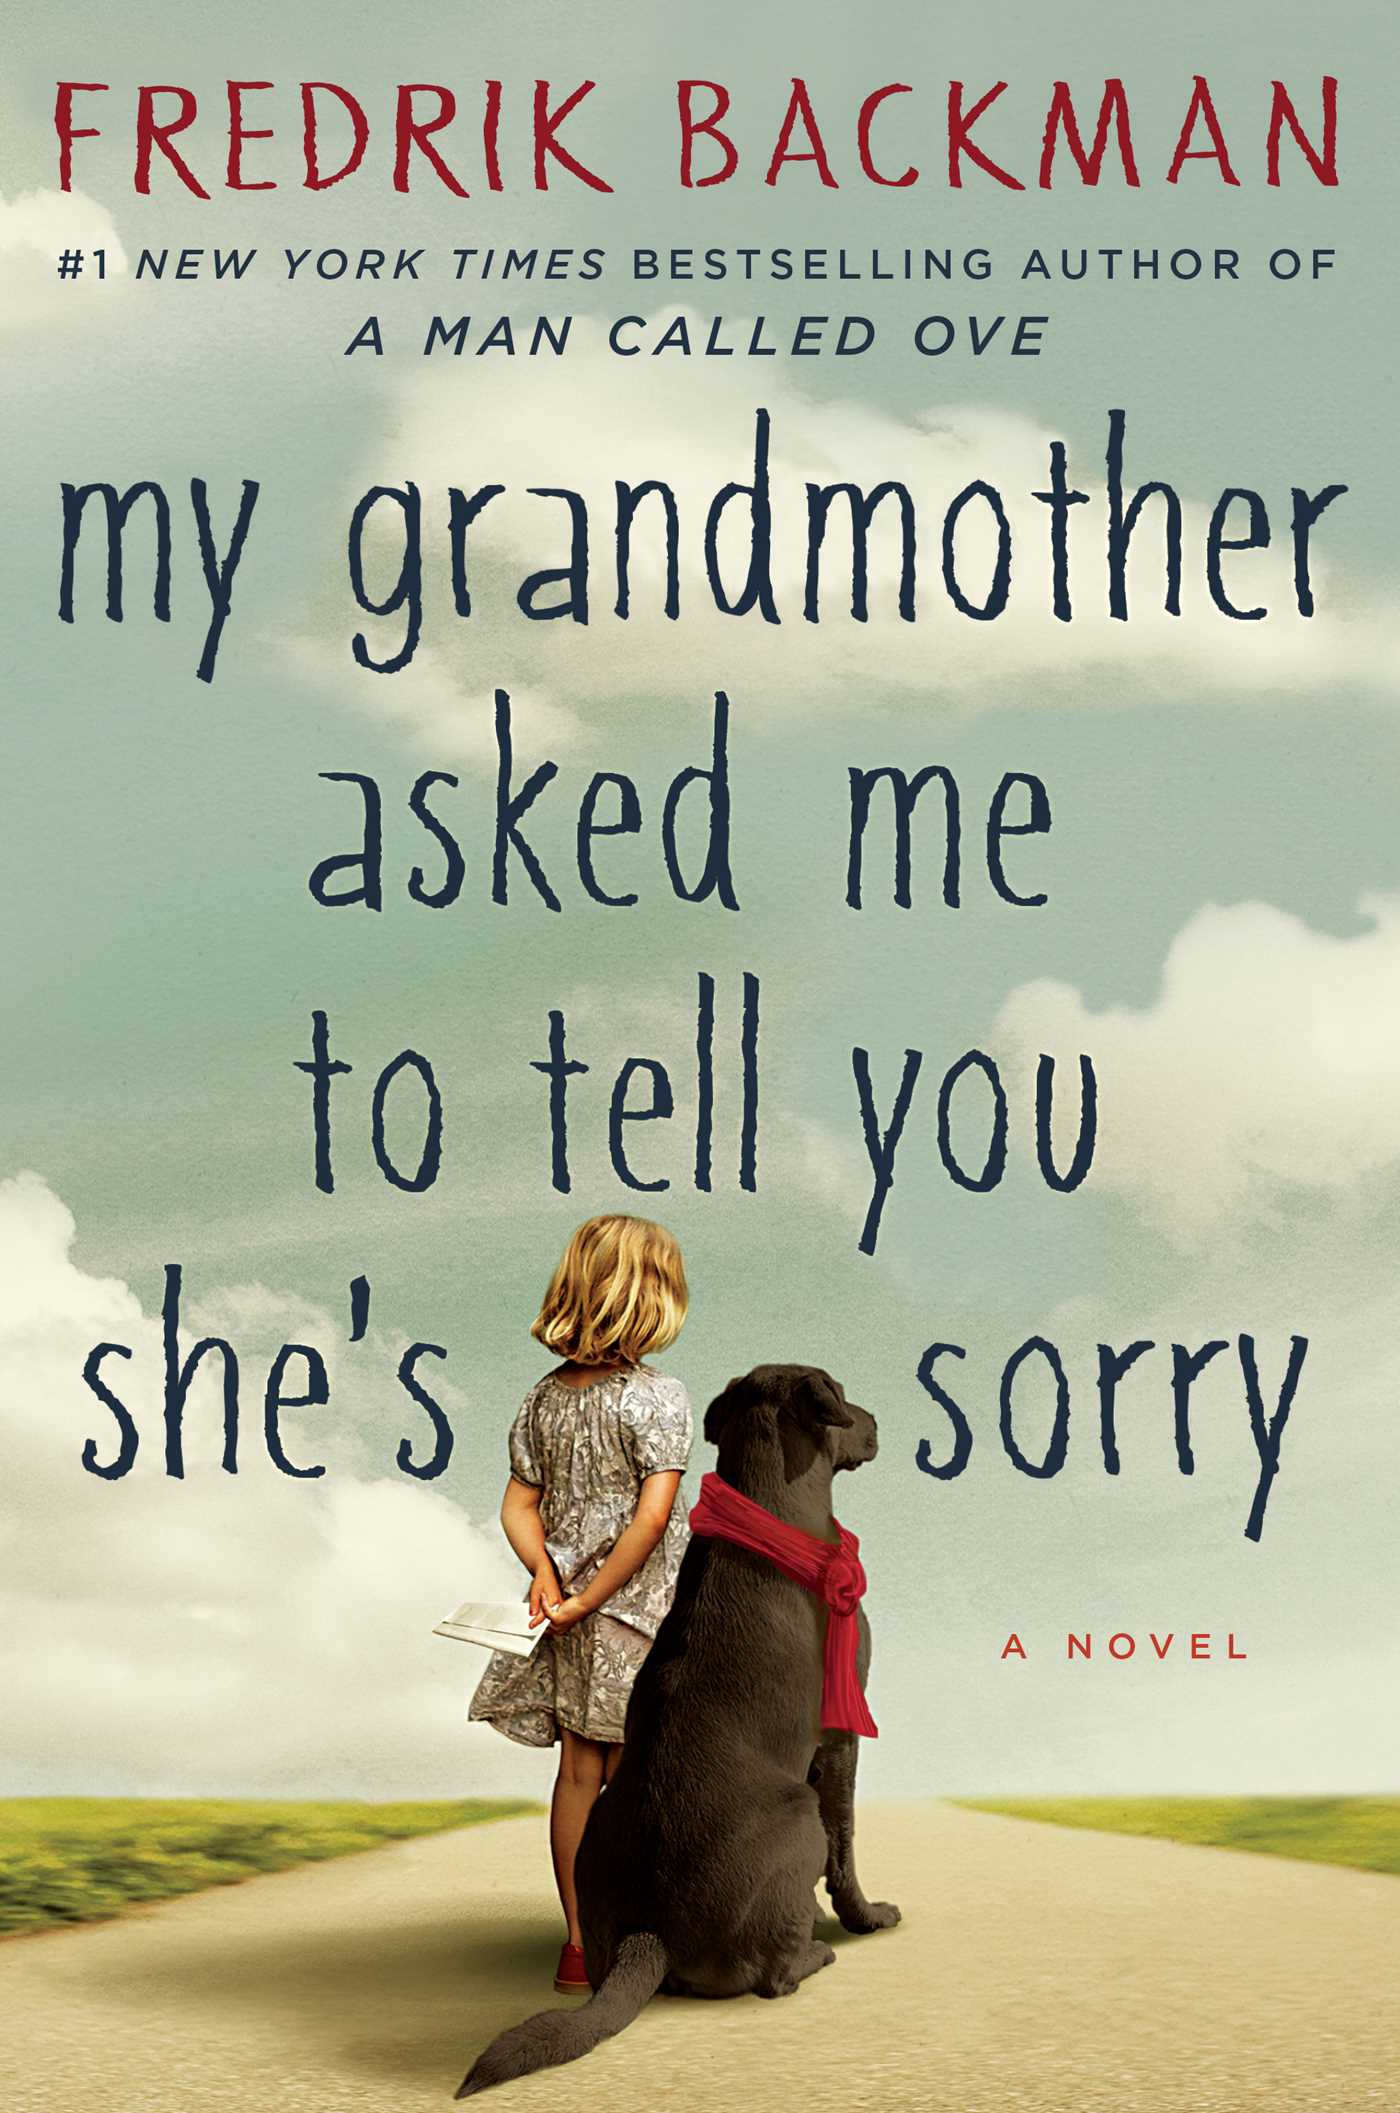 My grandmother asked me to tell you shes sorry 9781501115066 hr